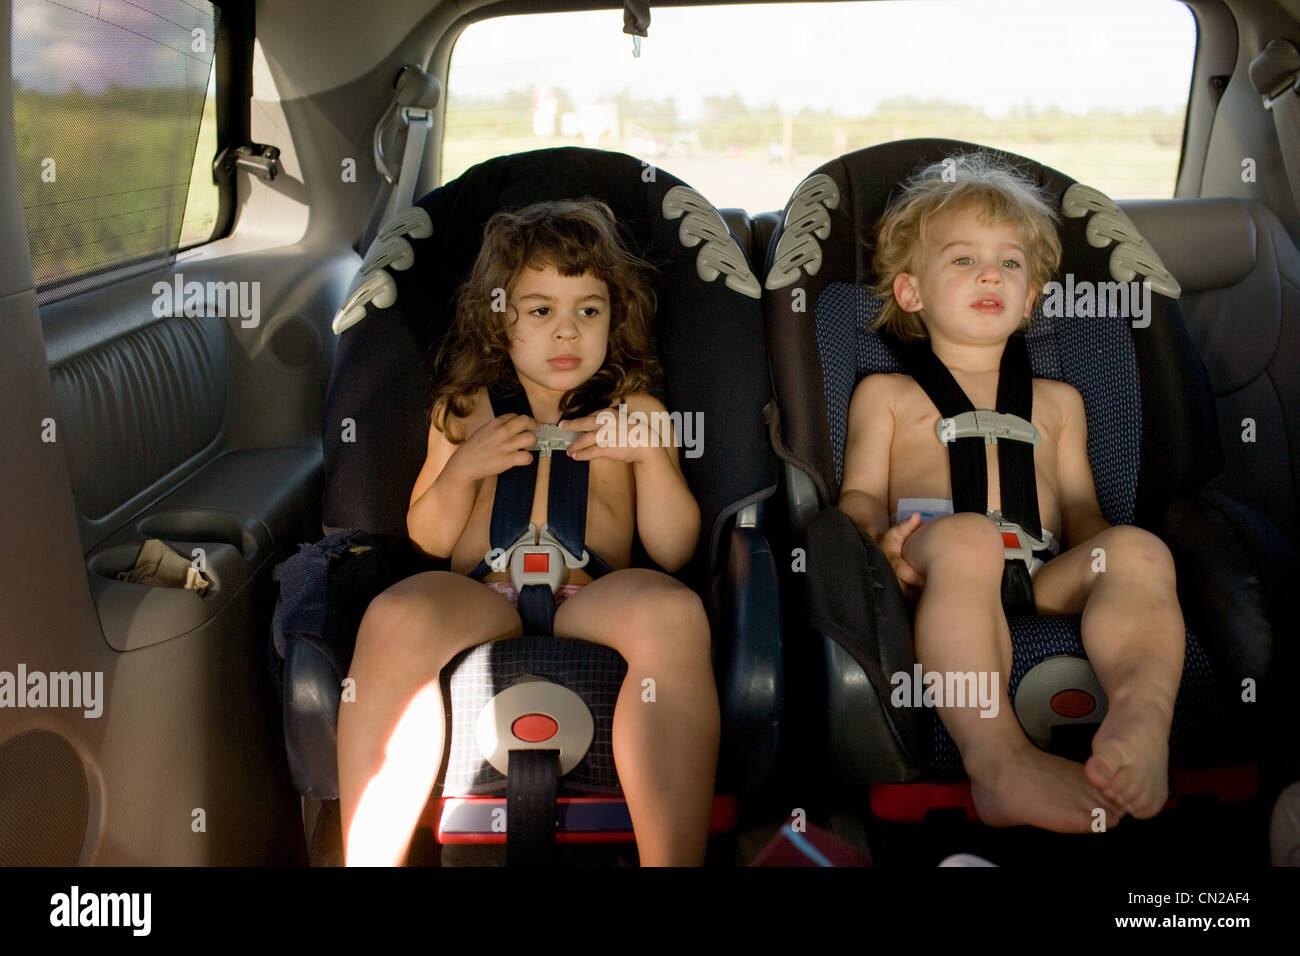 Brother and sister sitting in car seats - Stock Image